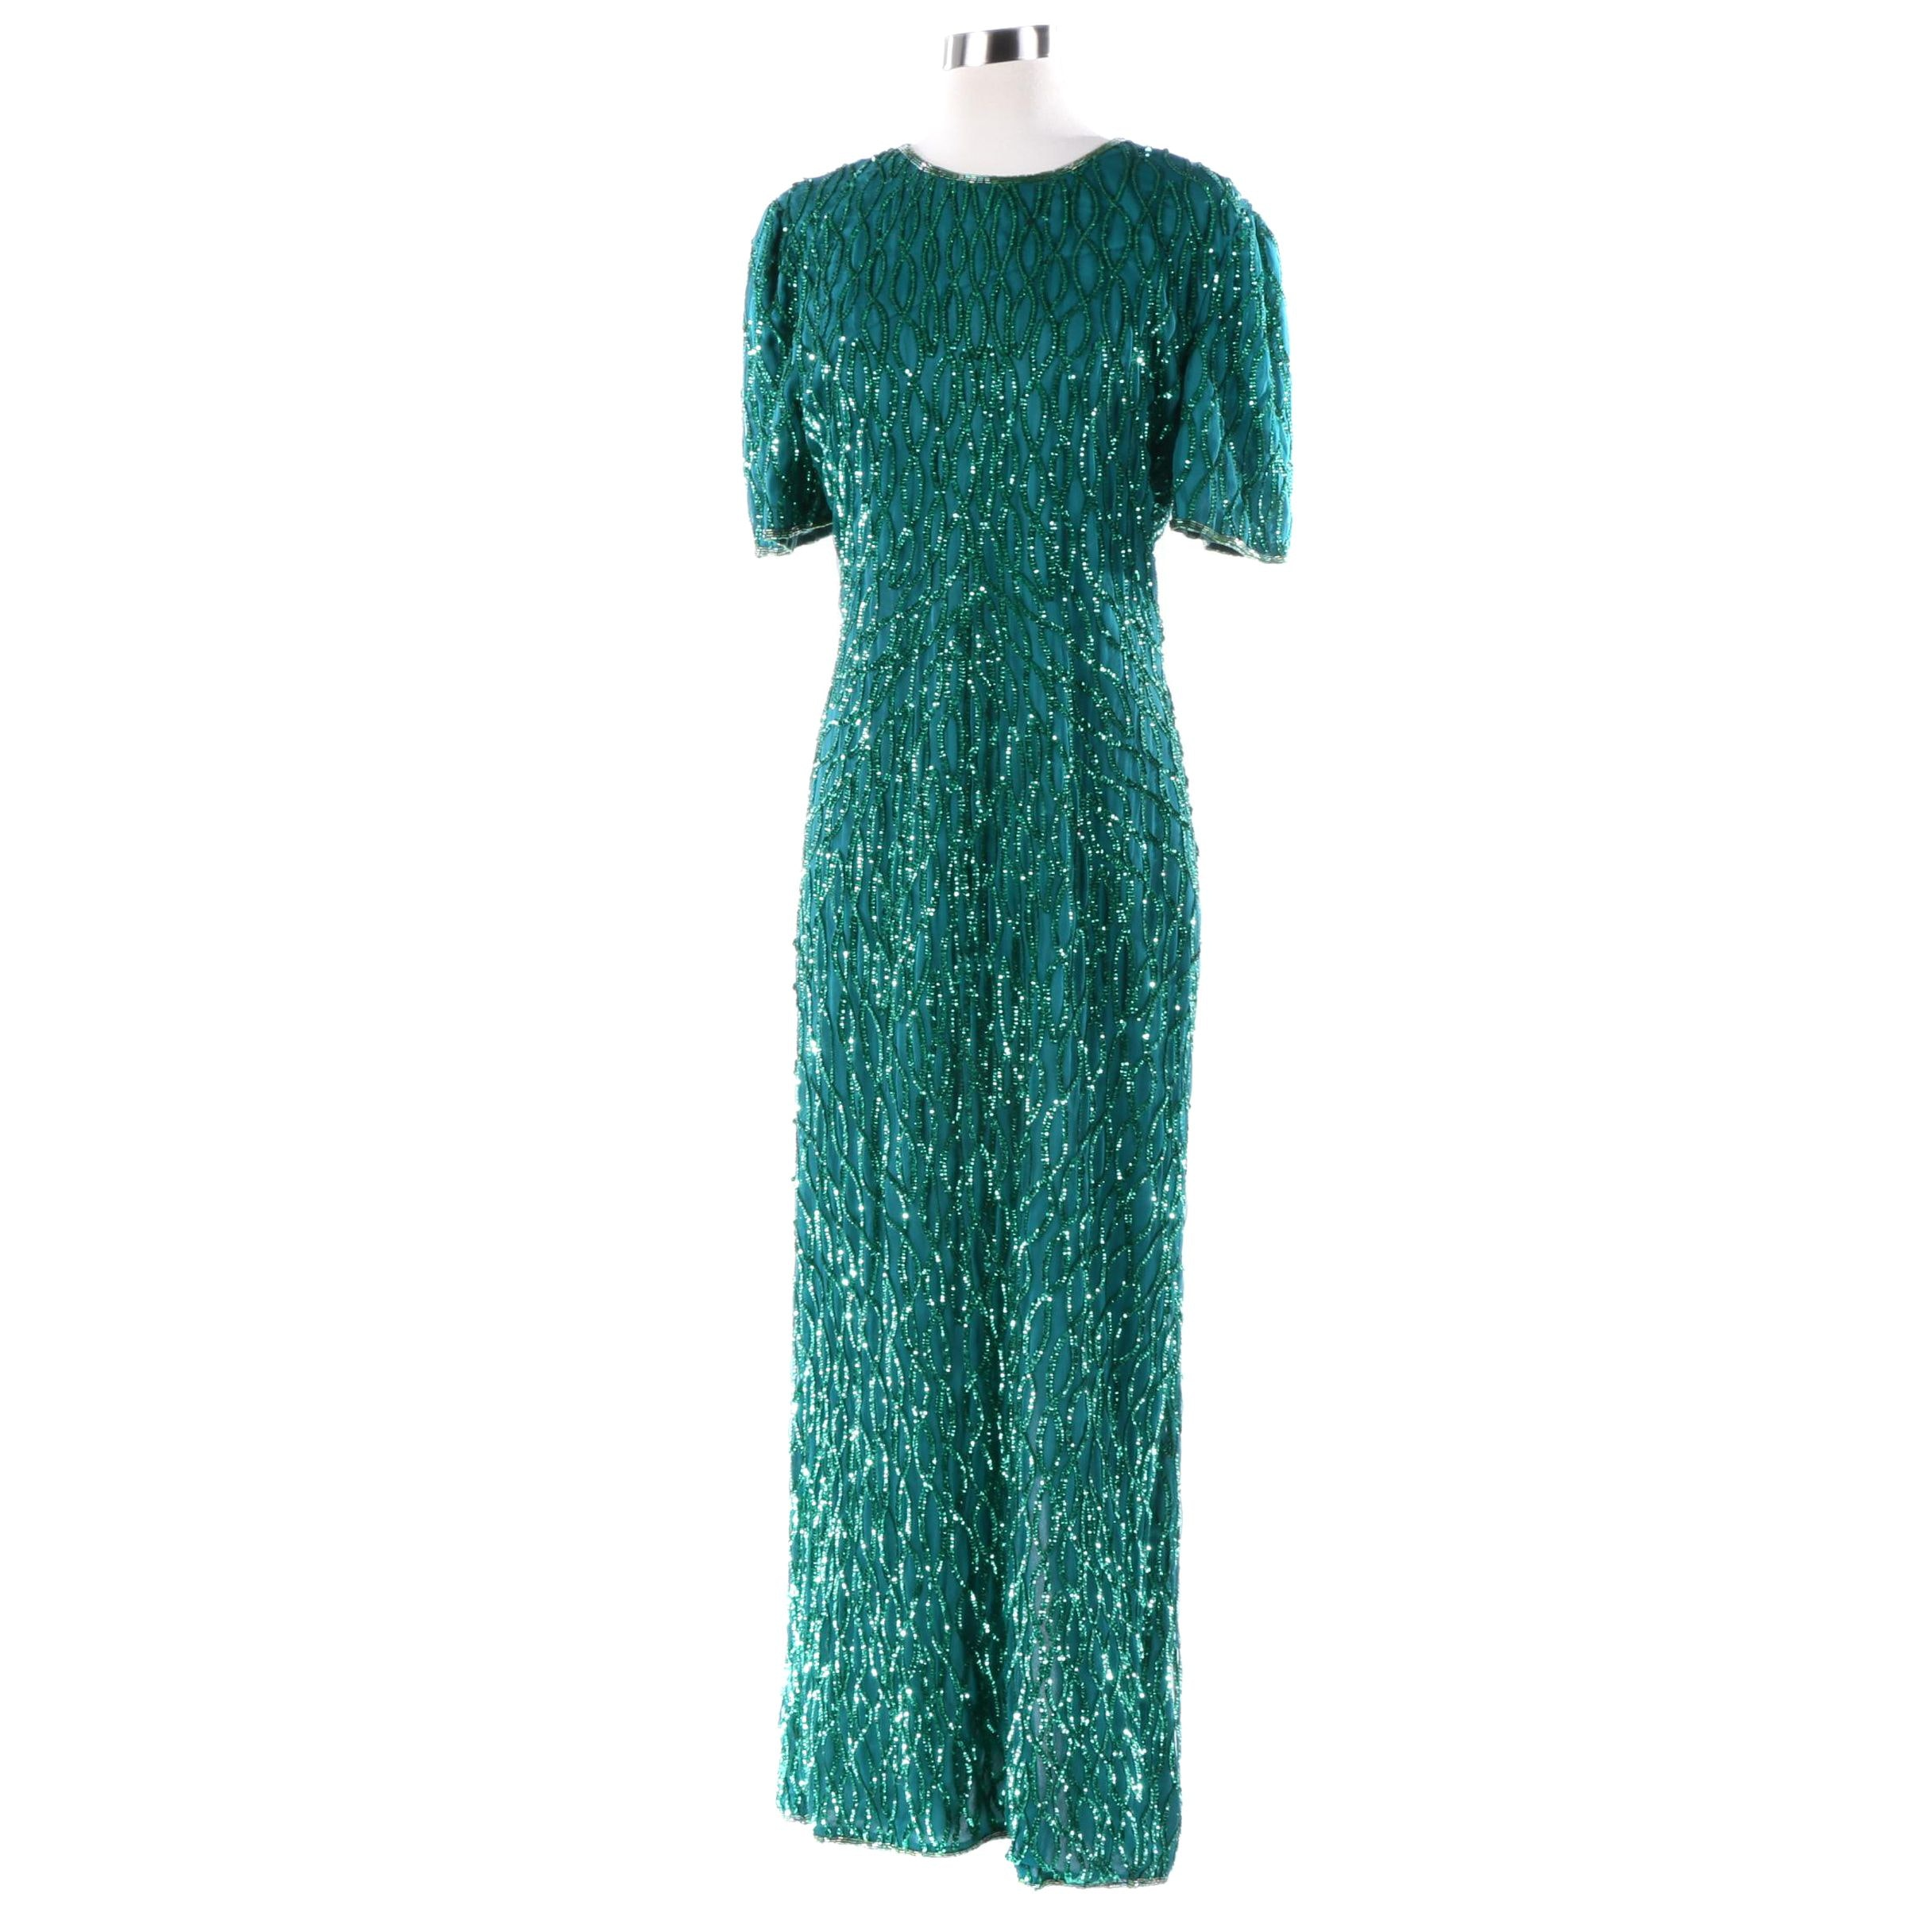 1980s Vintage Lawrence Kazar Emerald Green Sequin and Beaded Silk Evening Dress